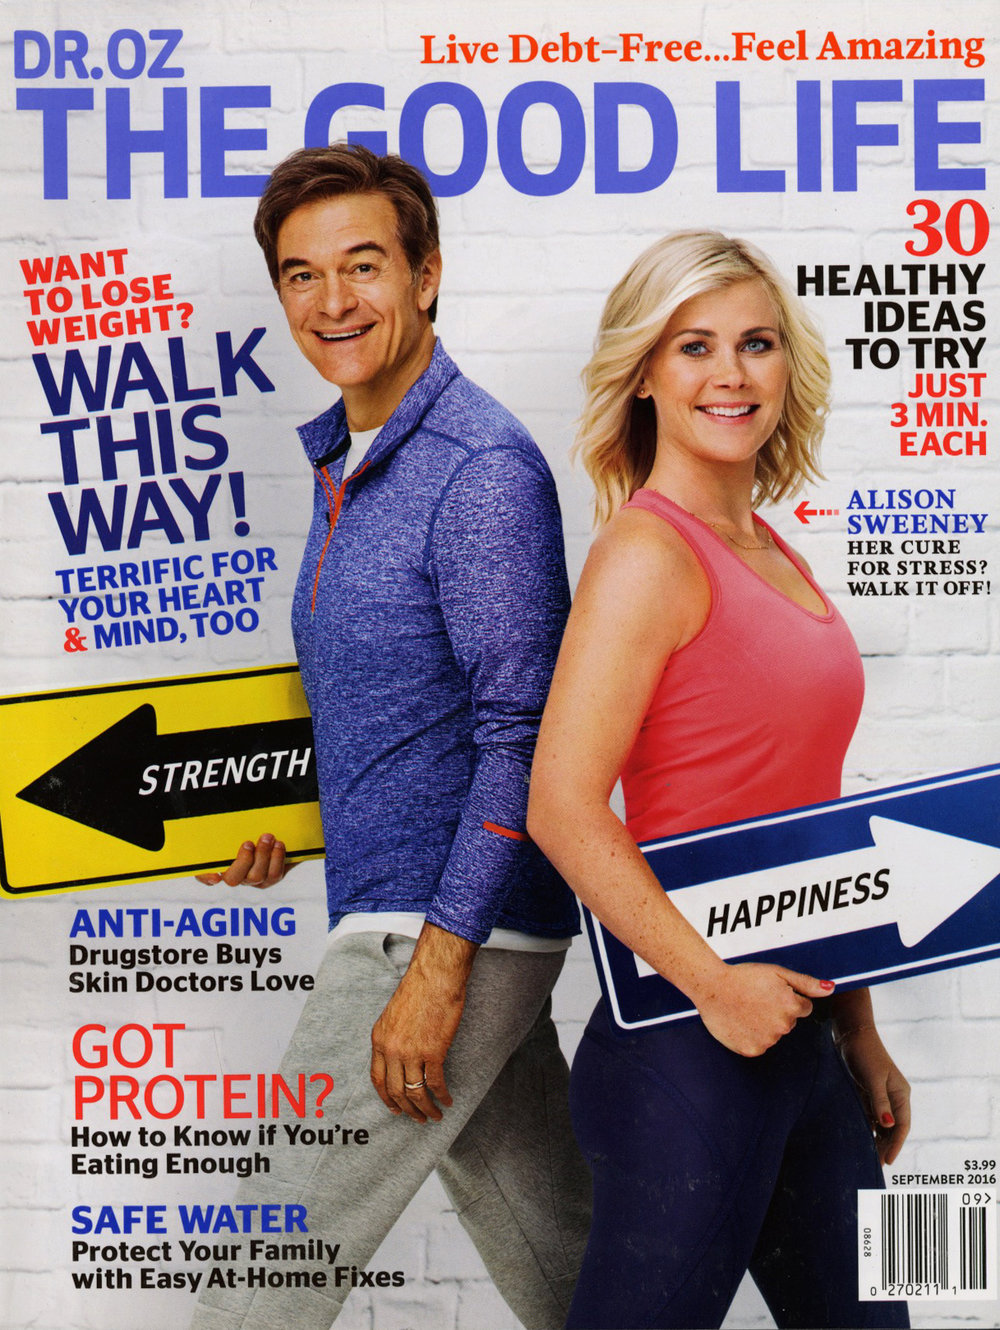 DROZ_Cover.jpg